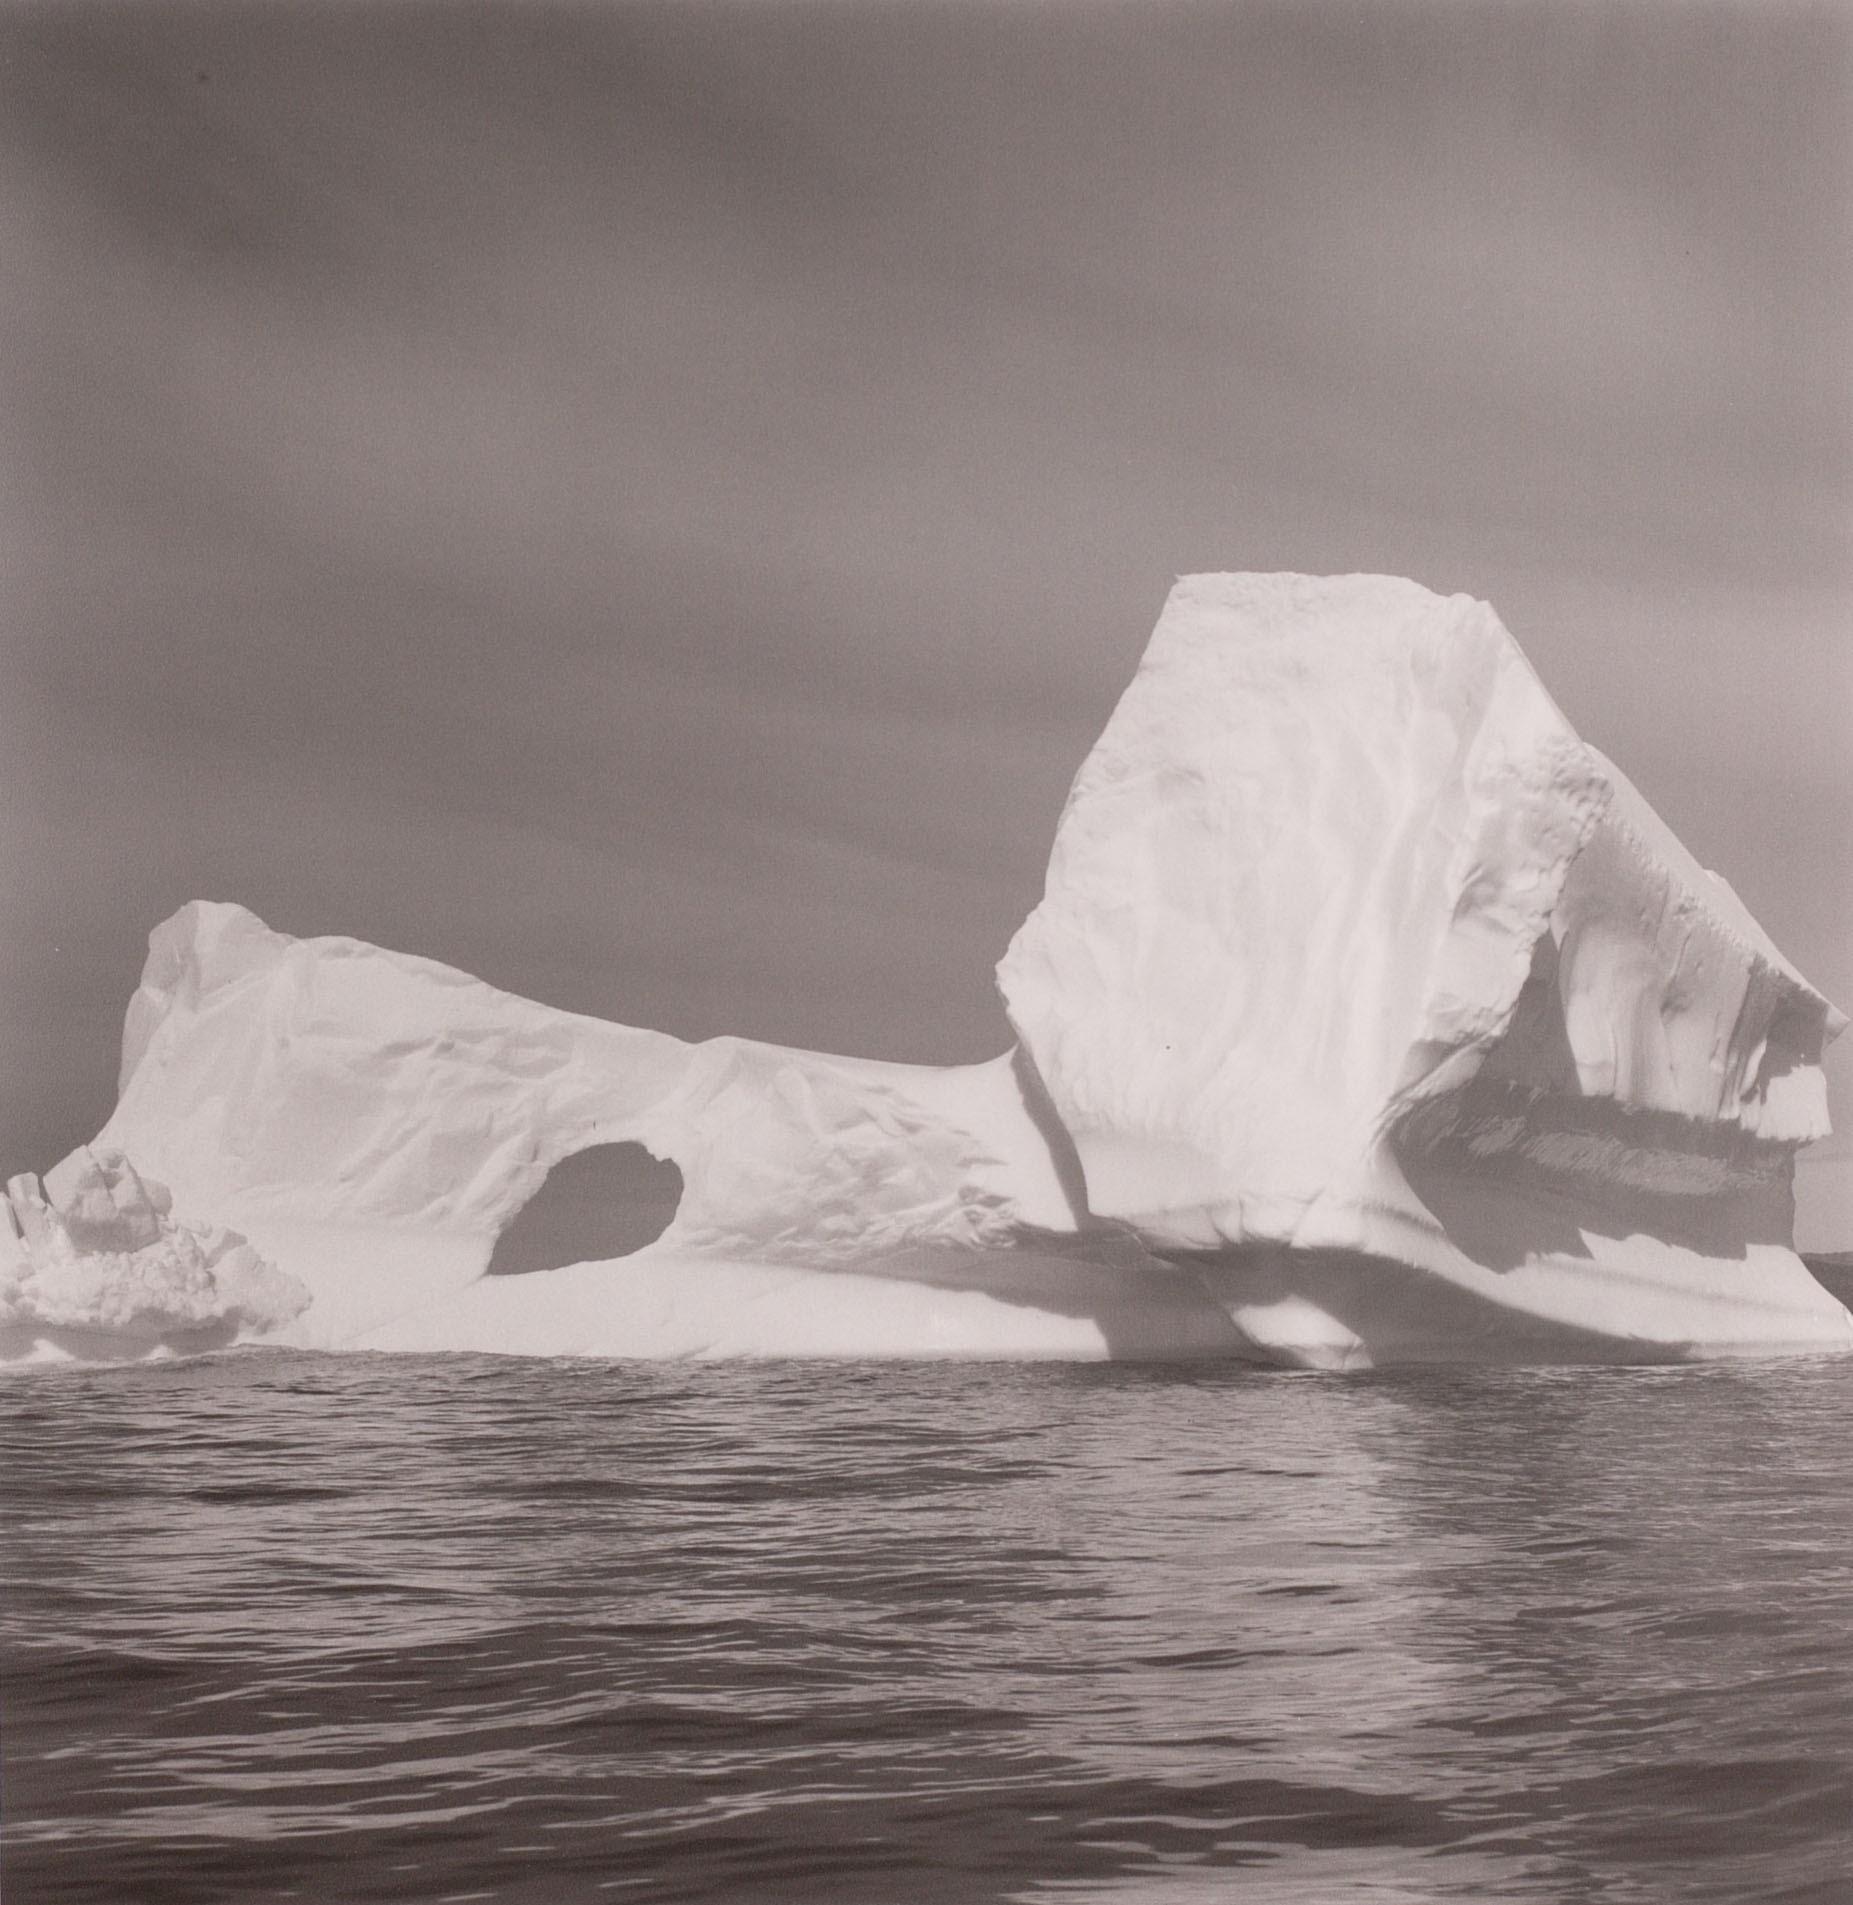 Lynn Davis, <i>Iceberg #21, Disko Bay, Greenland</i>, 1988. Eli and Edythe Broad Art Museum, Michigan State University, gift of Jim Agah and Wendy Sohorec Agah (BA School of Communications 1989).